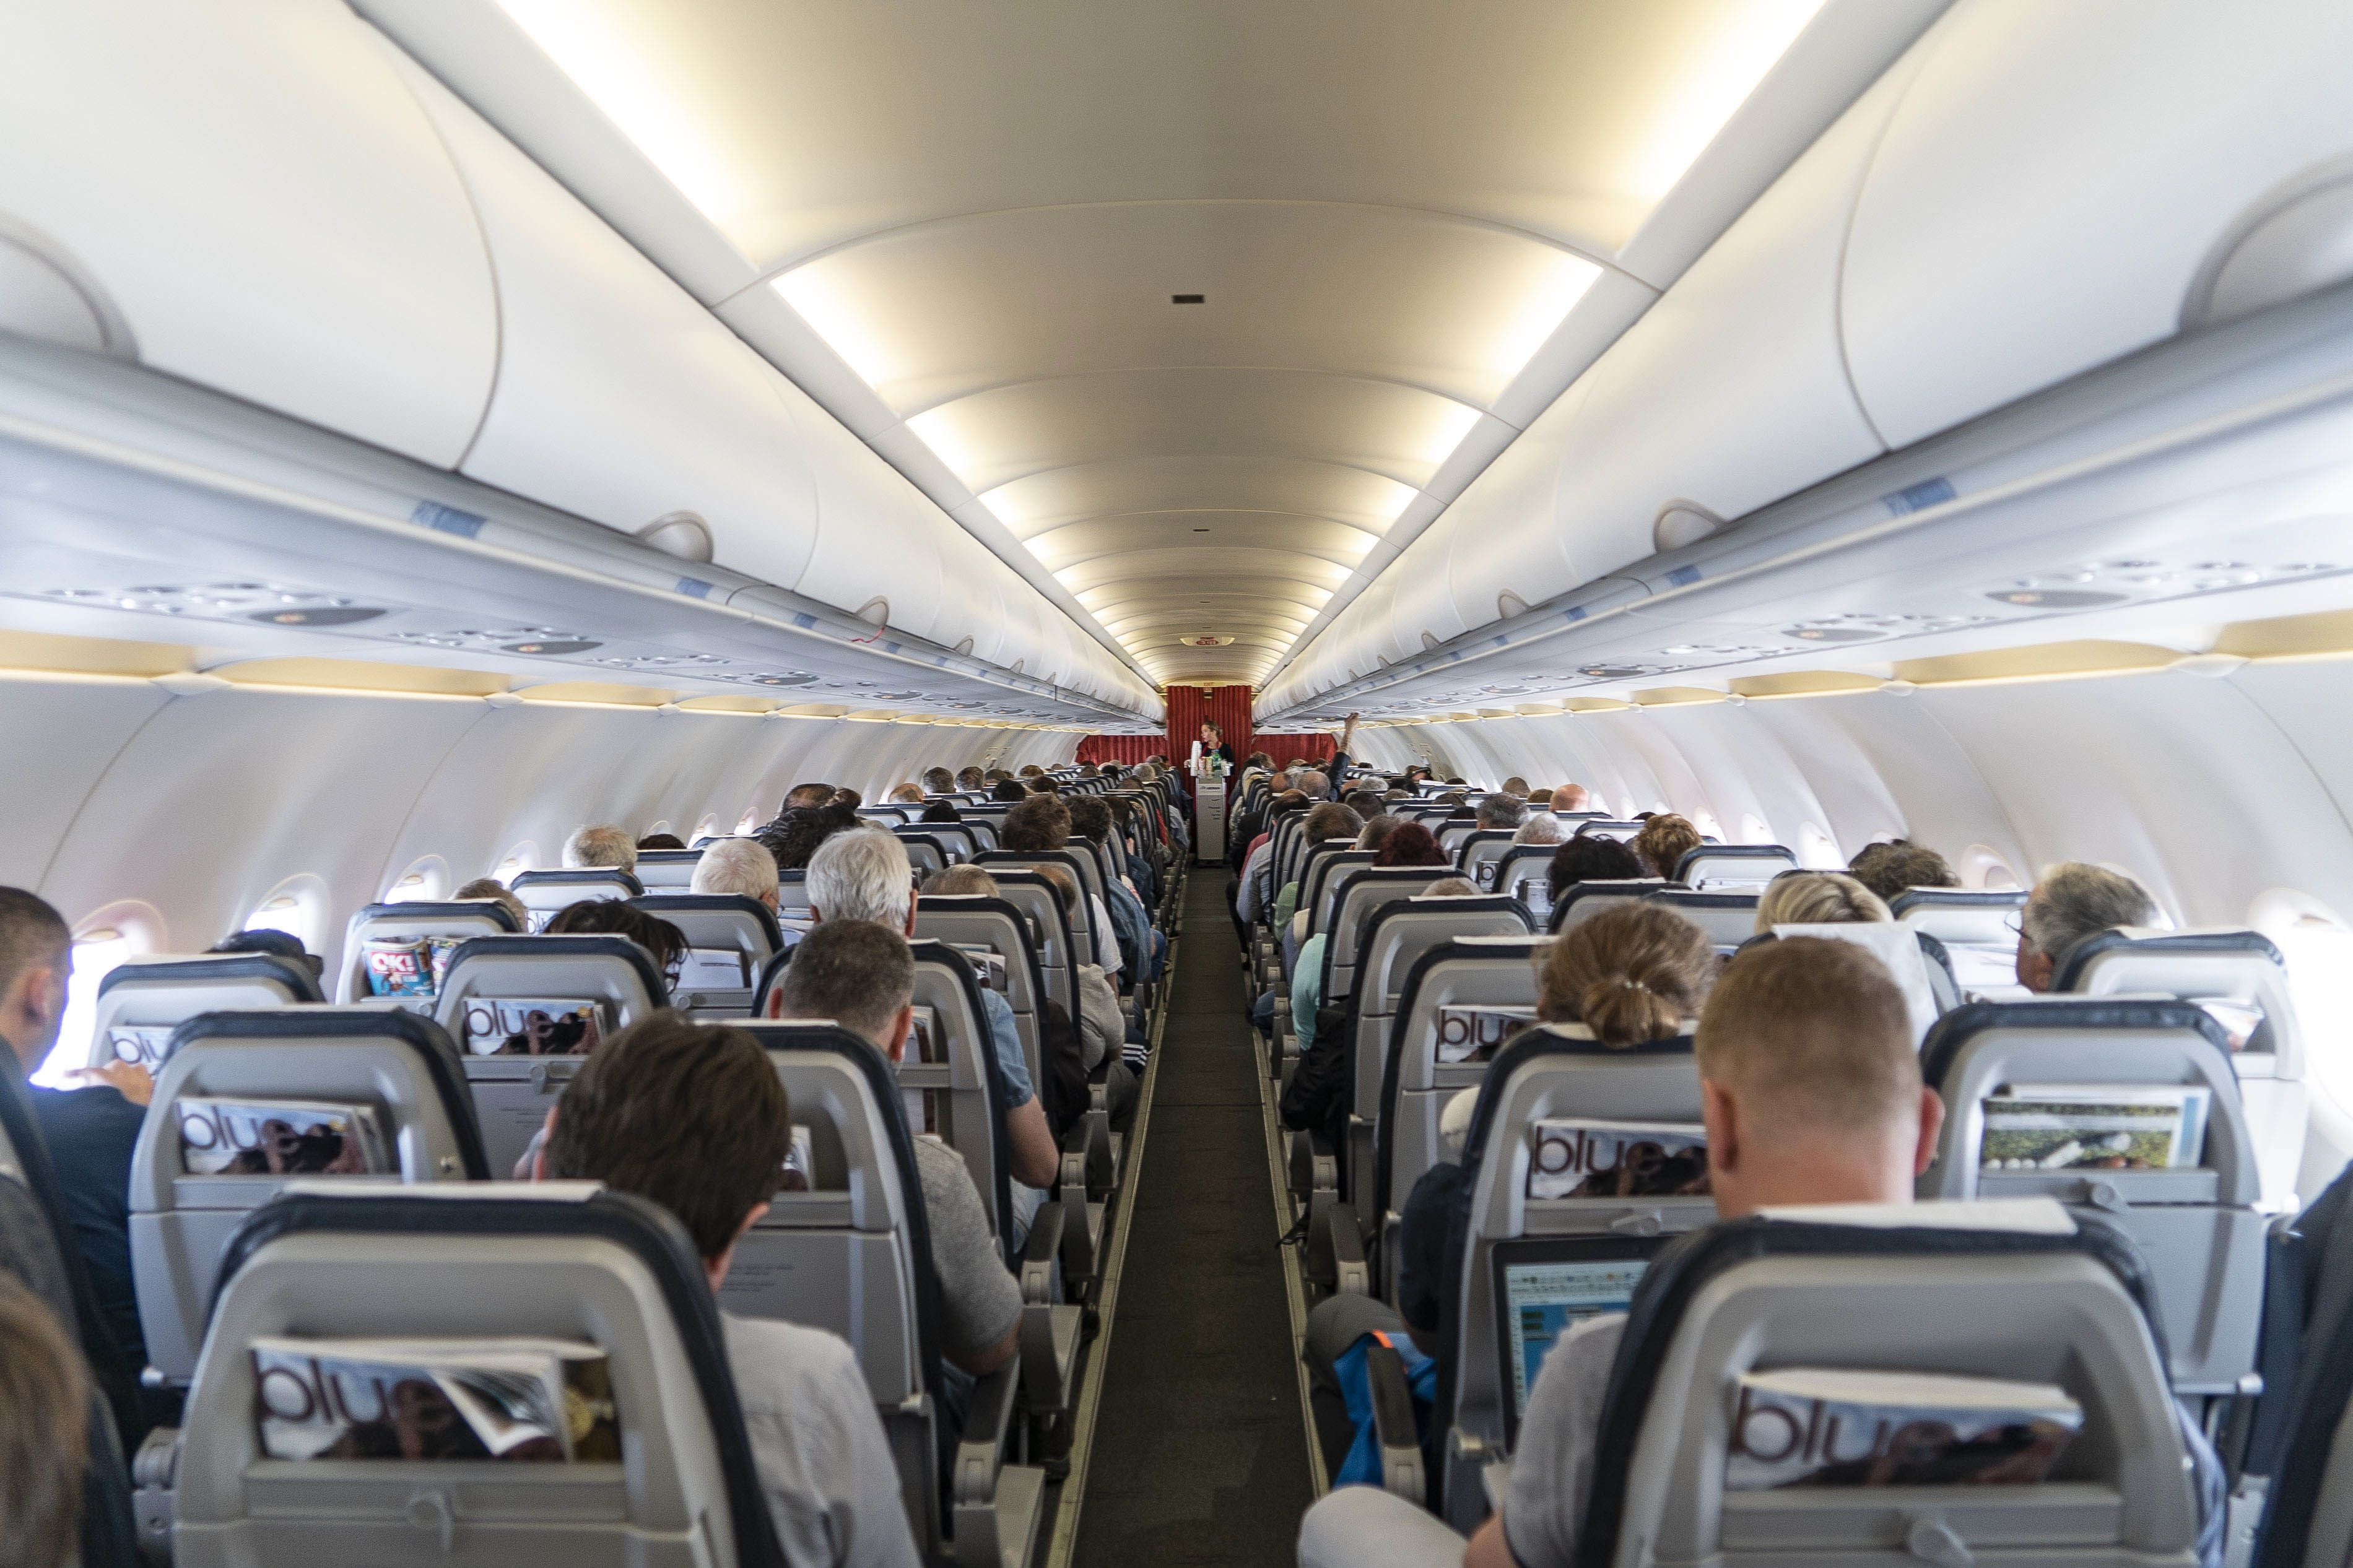 Why do airlines overbook flights?